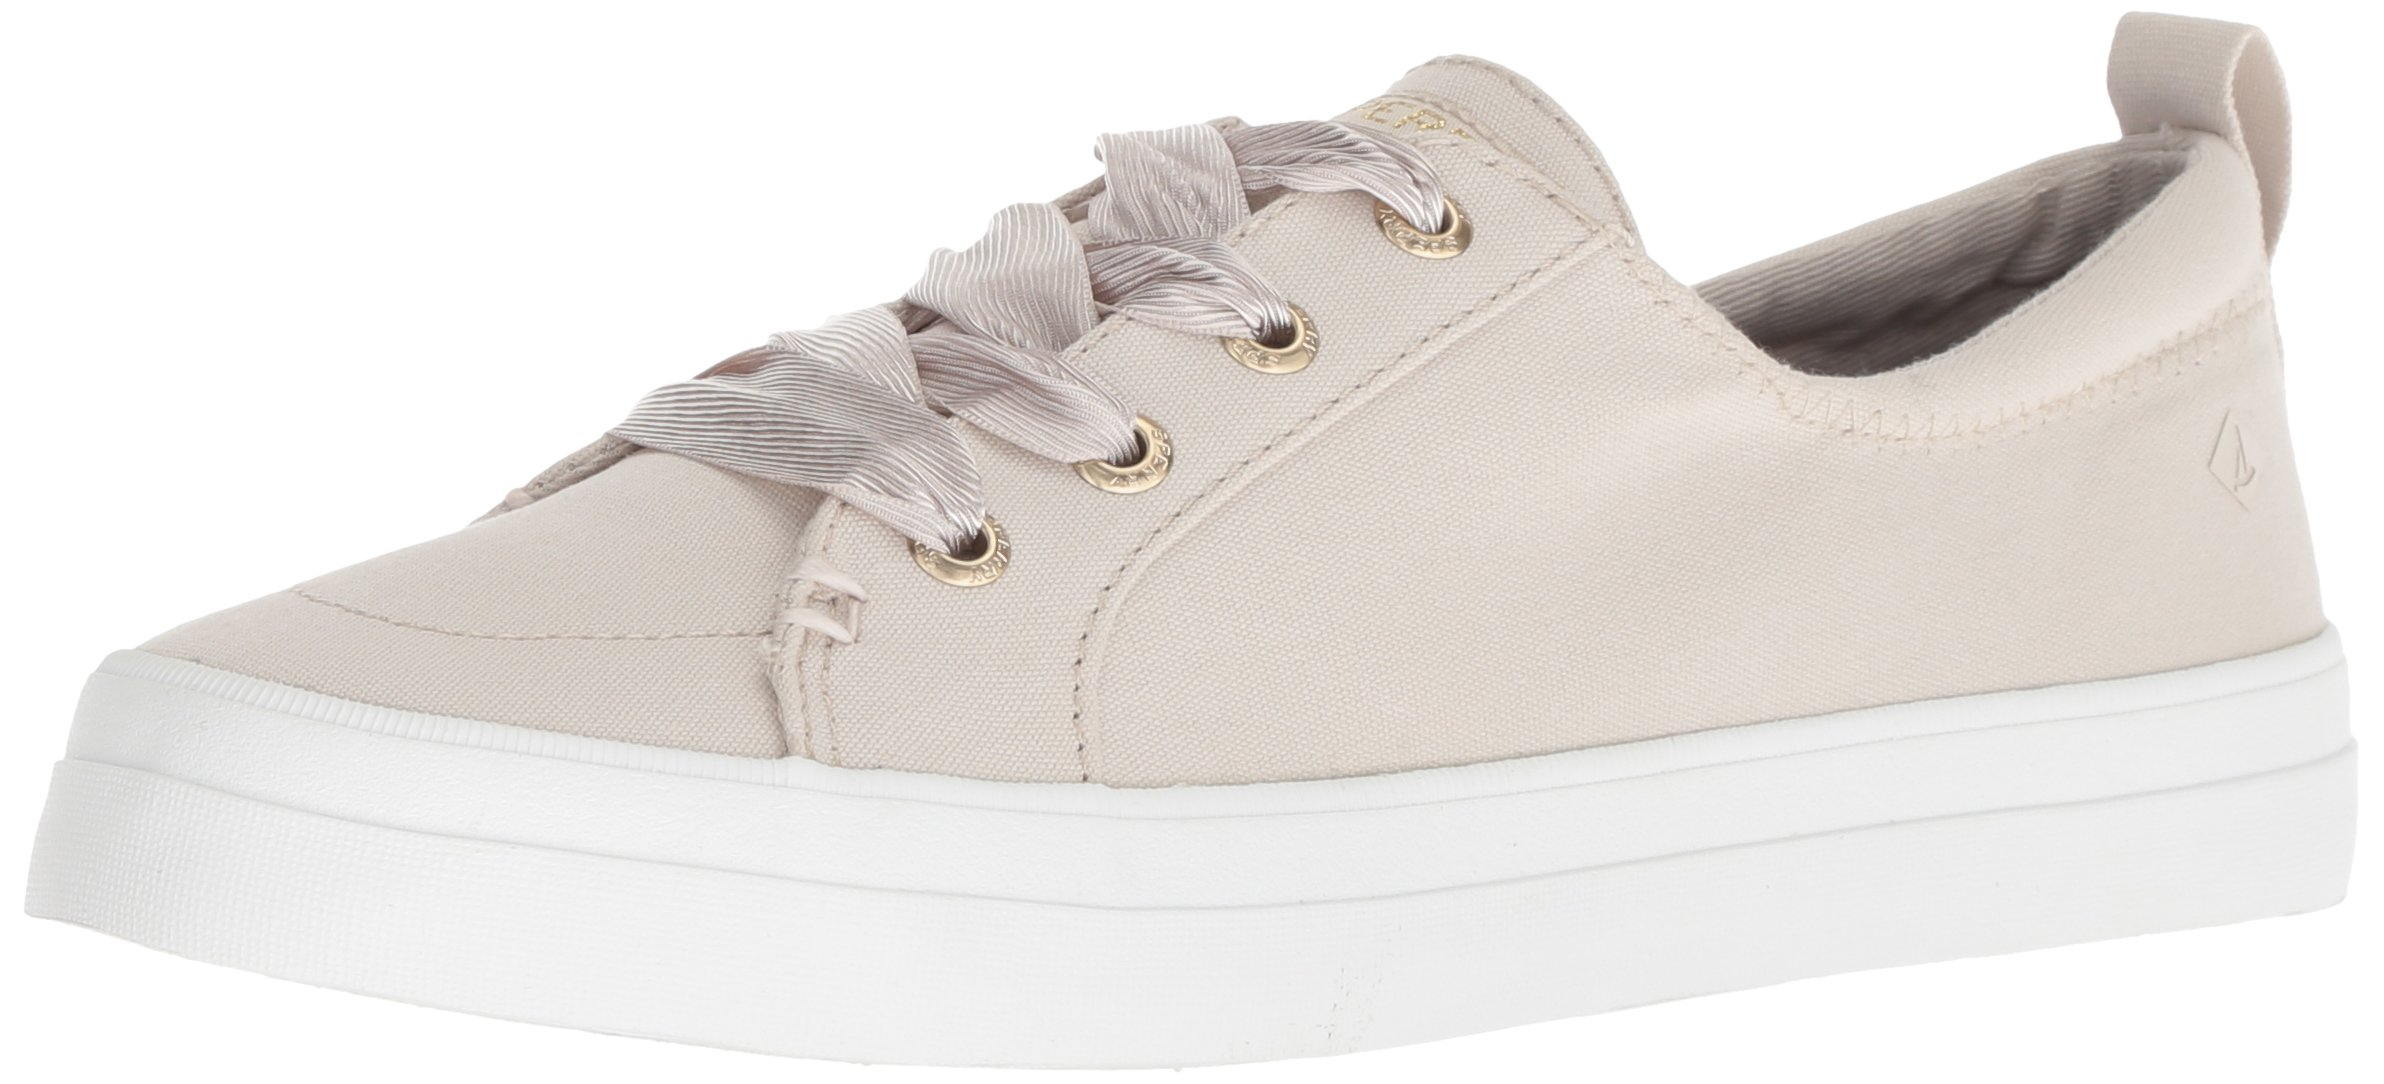 Sperry Top-Sider Women's Crest Vibe Satin LACE Sneaker, Ivory, M 075 Medium US